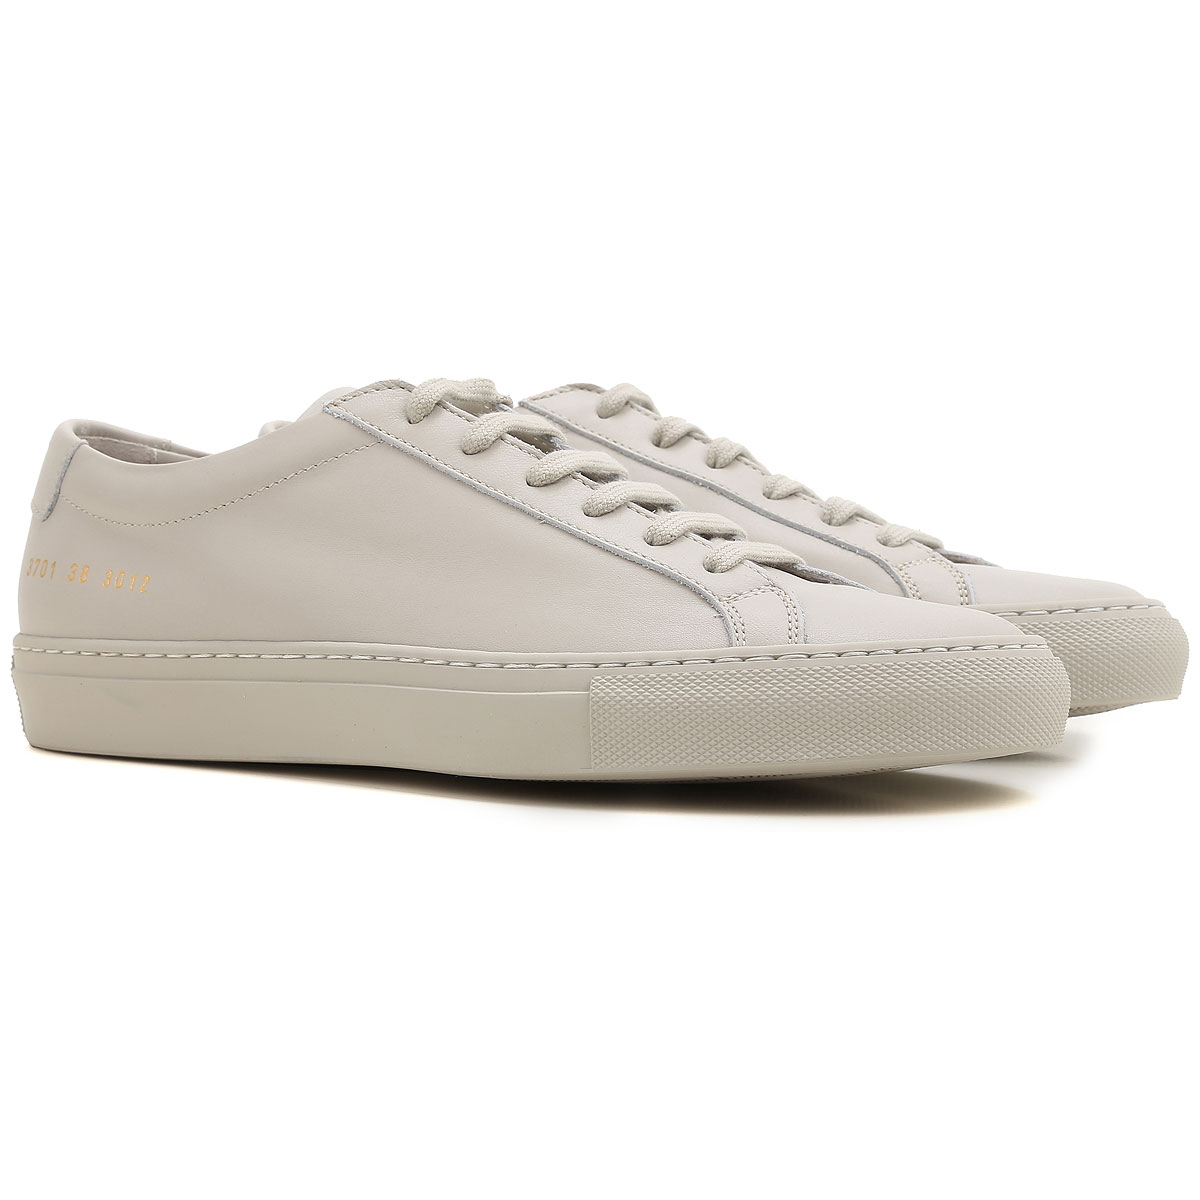 Image of Woman by Common Projects Sneakers for Women, Clay, Leather, 2017, 10 9